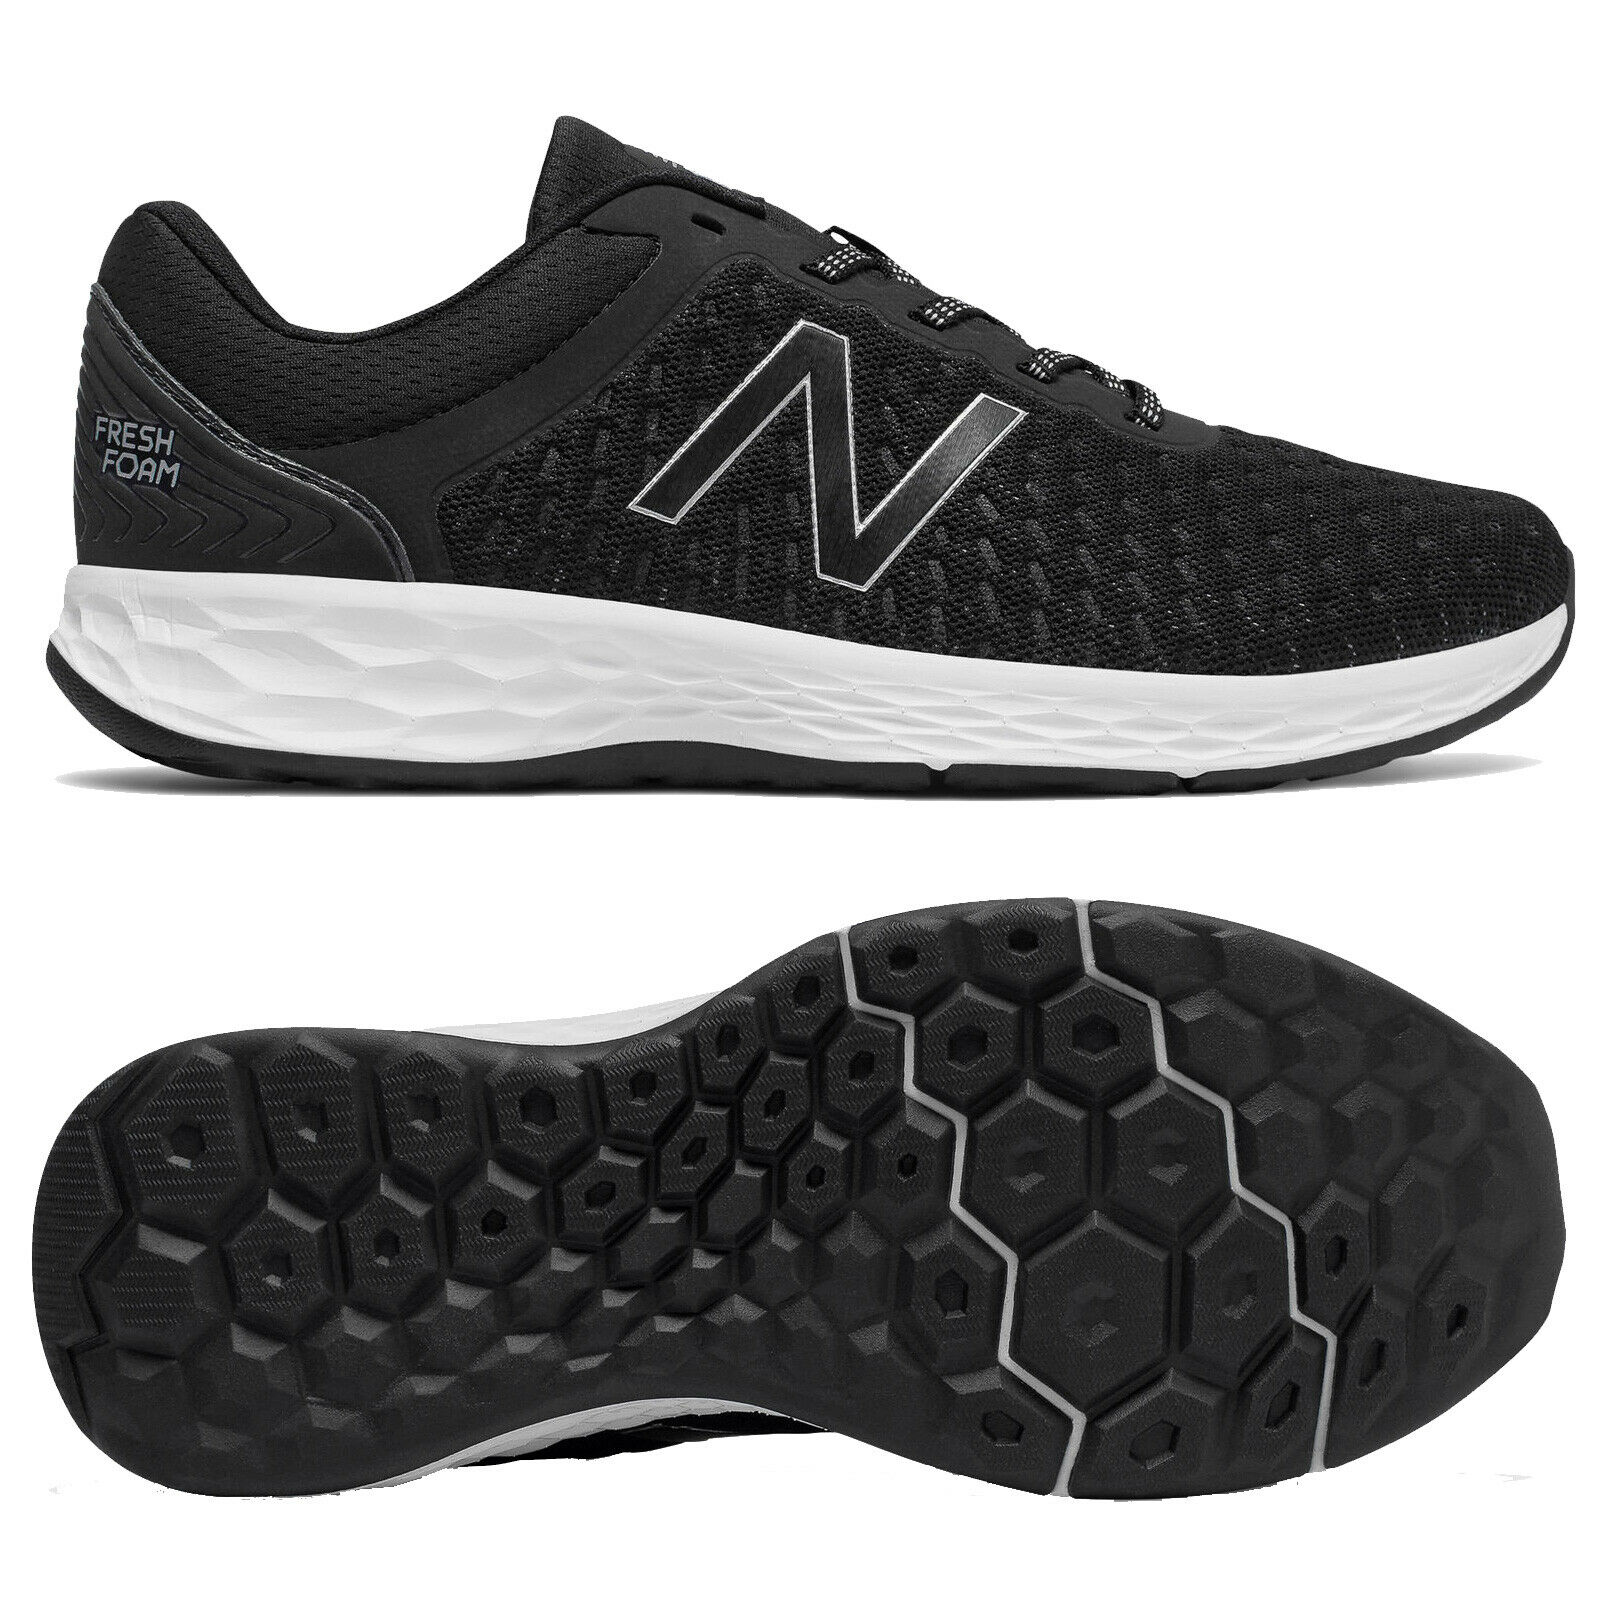 2019 New Balance Mens Fresh Foam Kaymin Trainers Running Walking  Trail shoes  selling well all over the world